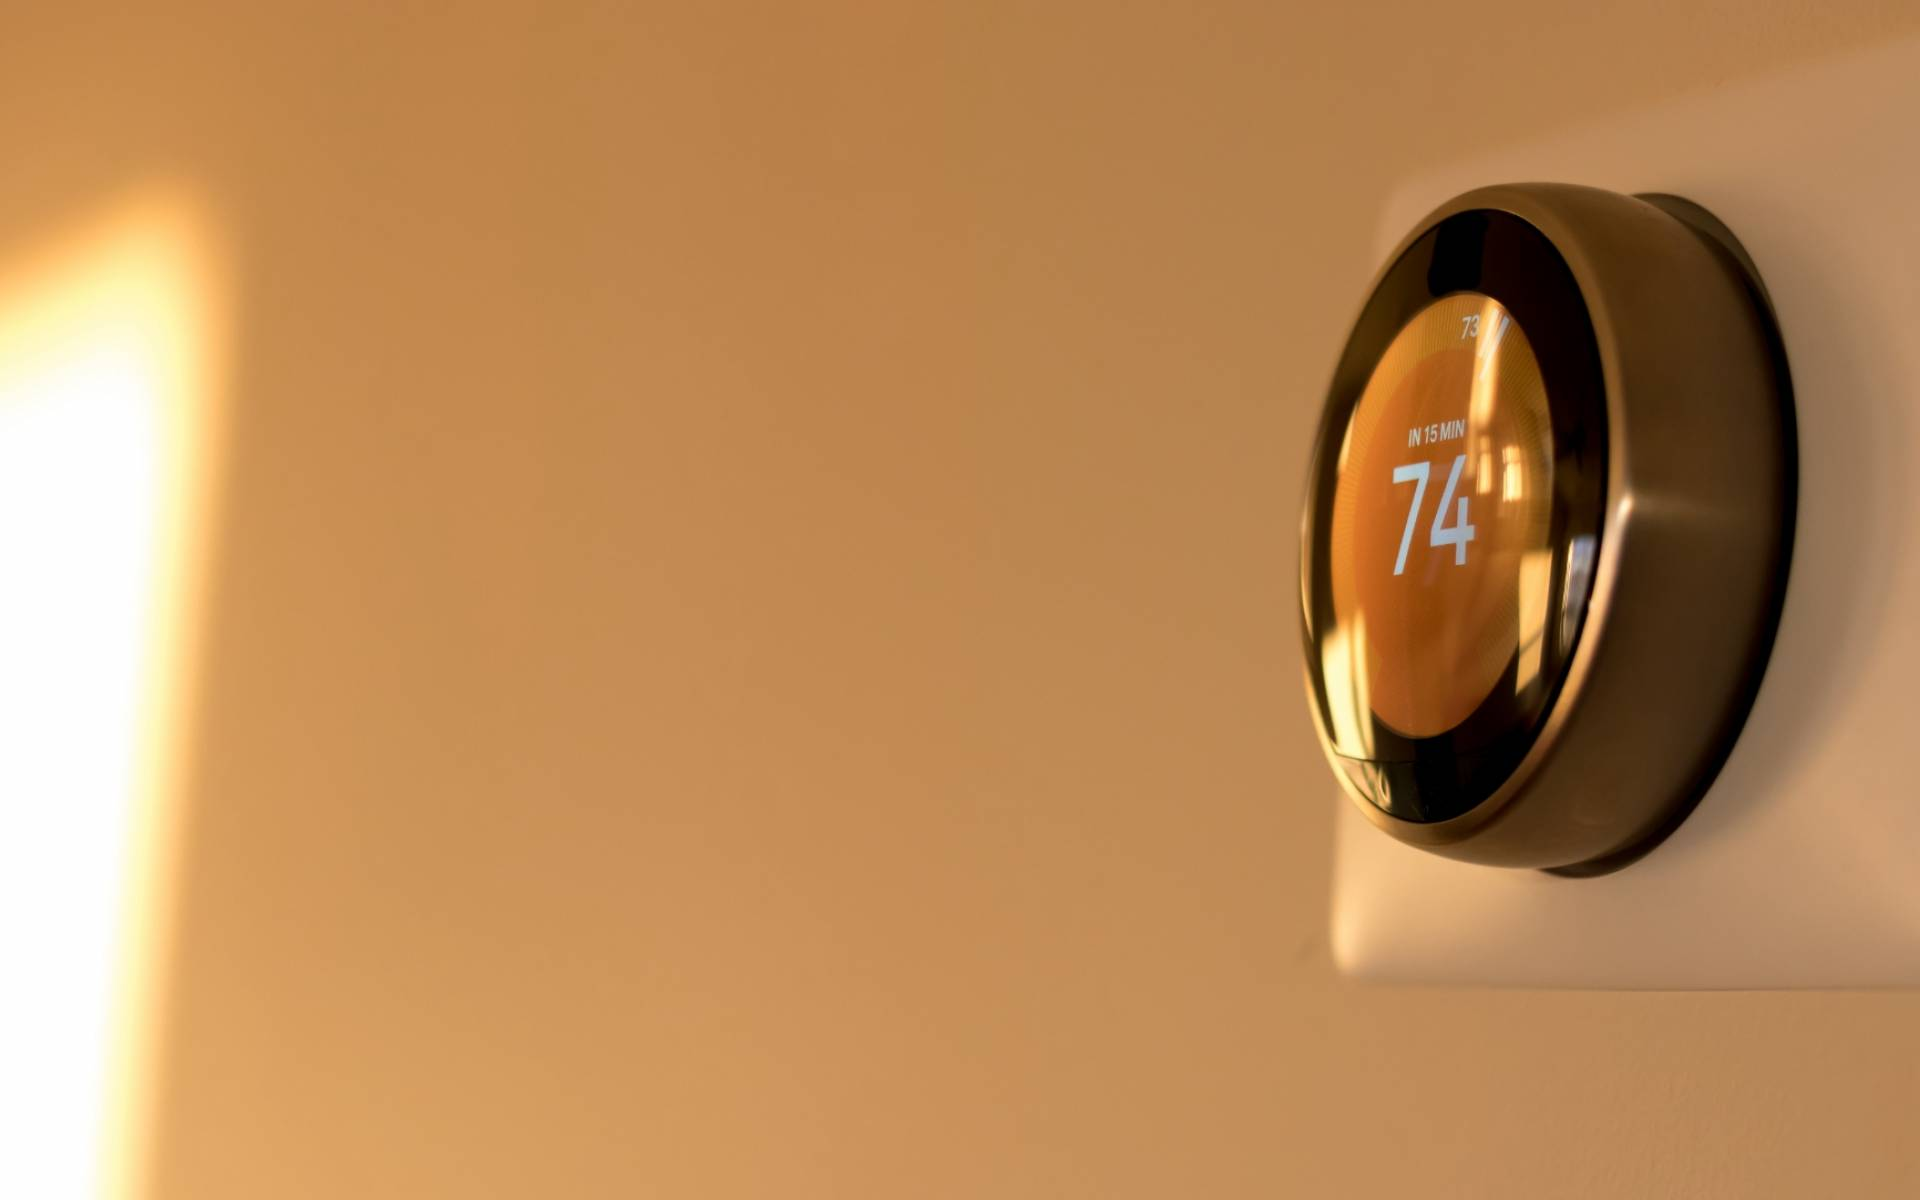 Thermostat placeholder